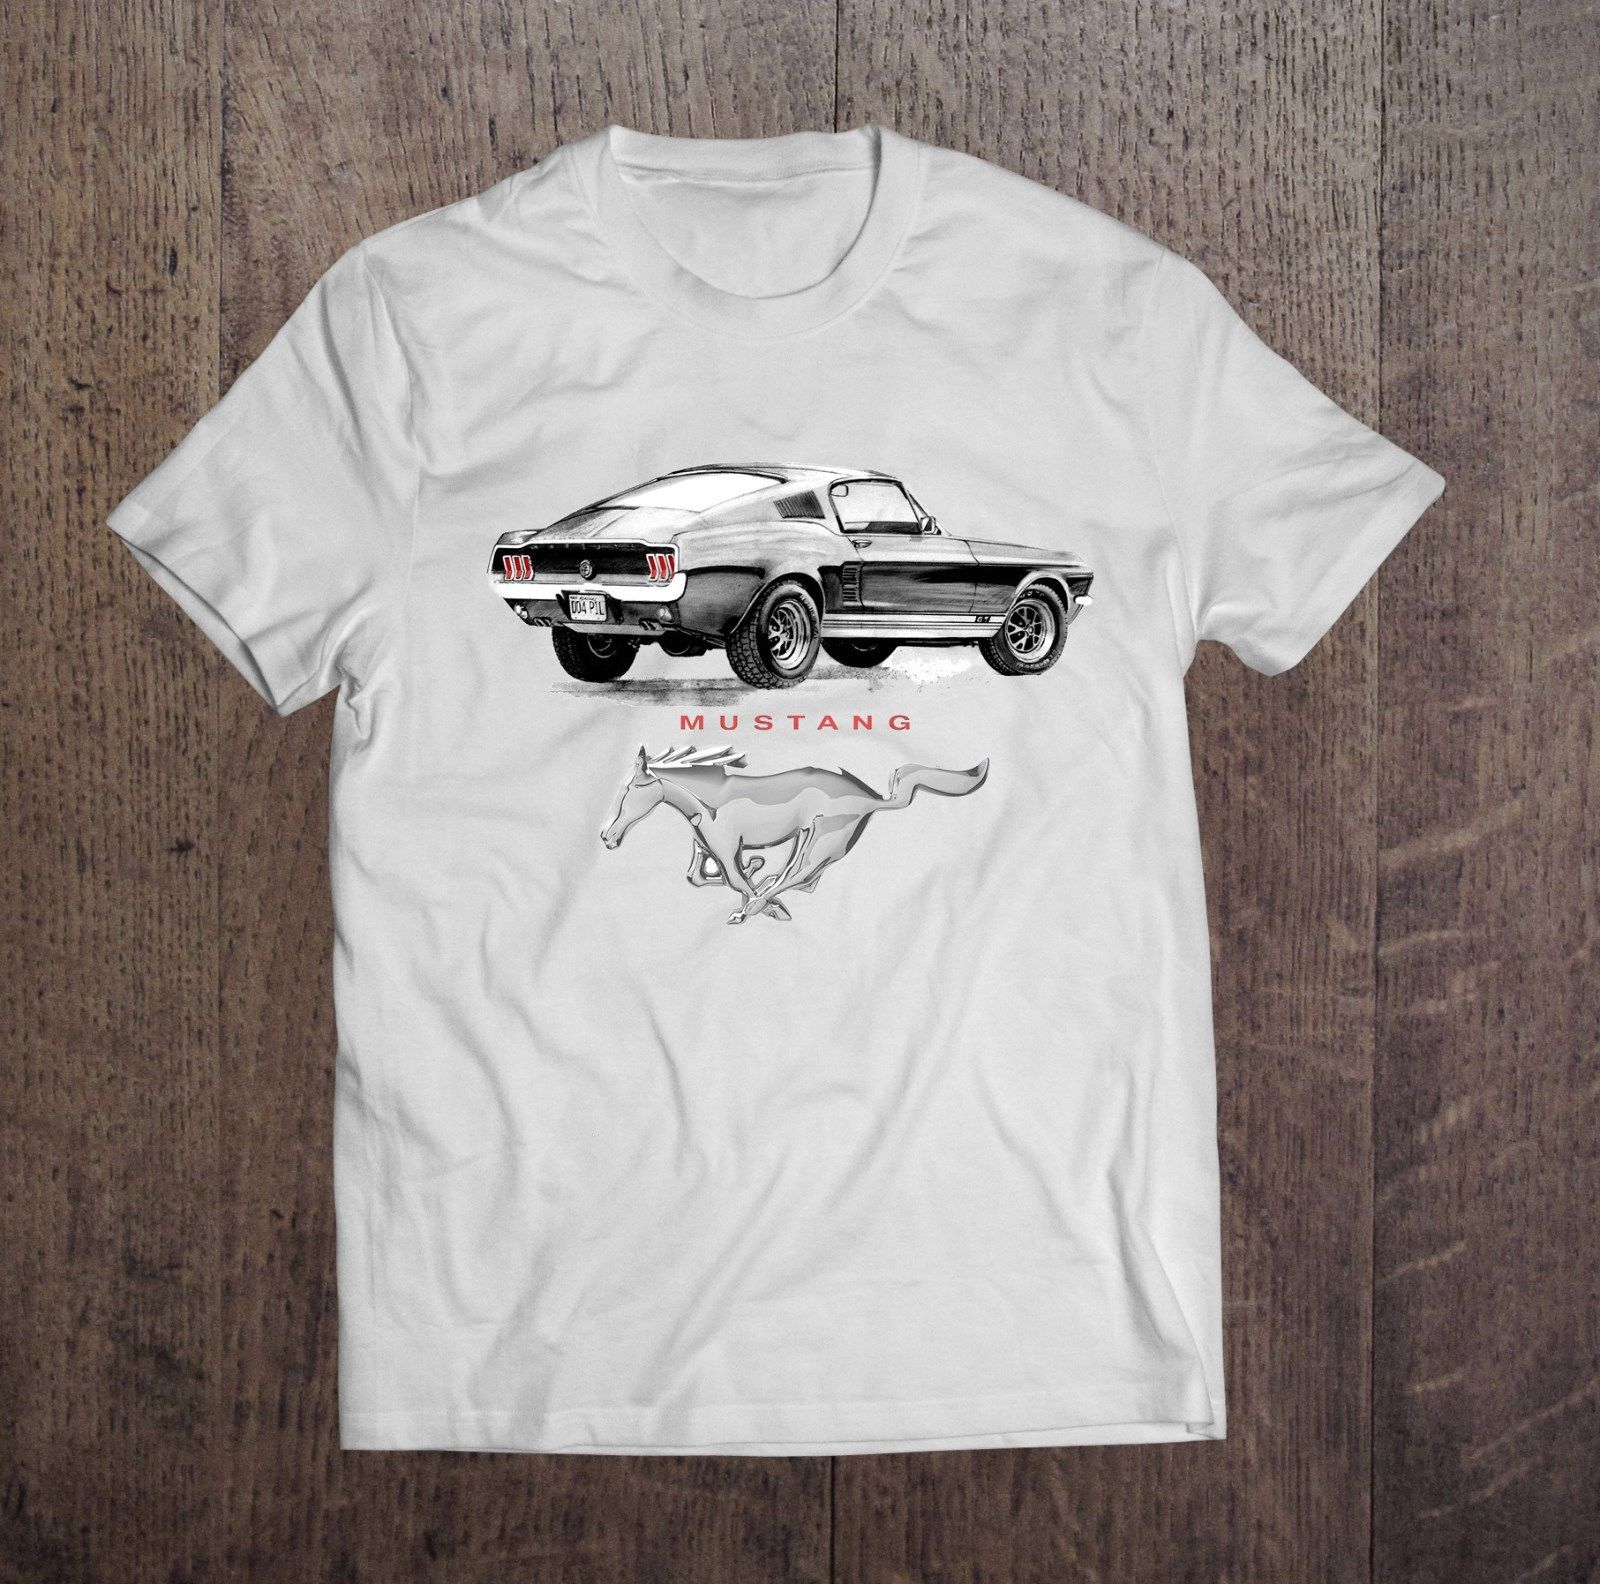 I Don`t Snore I Dream I`m A Eleanor Shelby Mustang Gt 500 196 Kids Car T-shirt Kids' Clothes, Shoes & Accs.